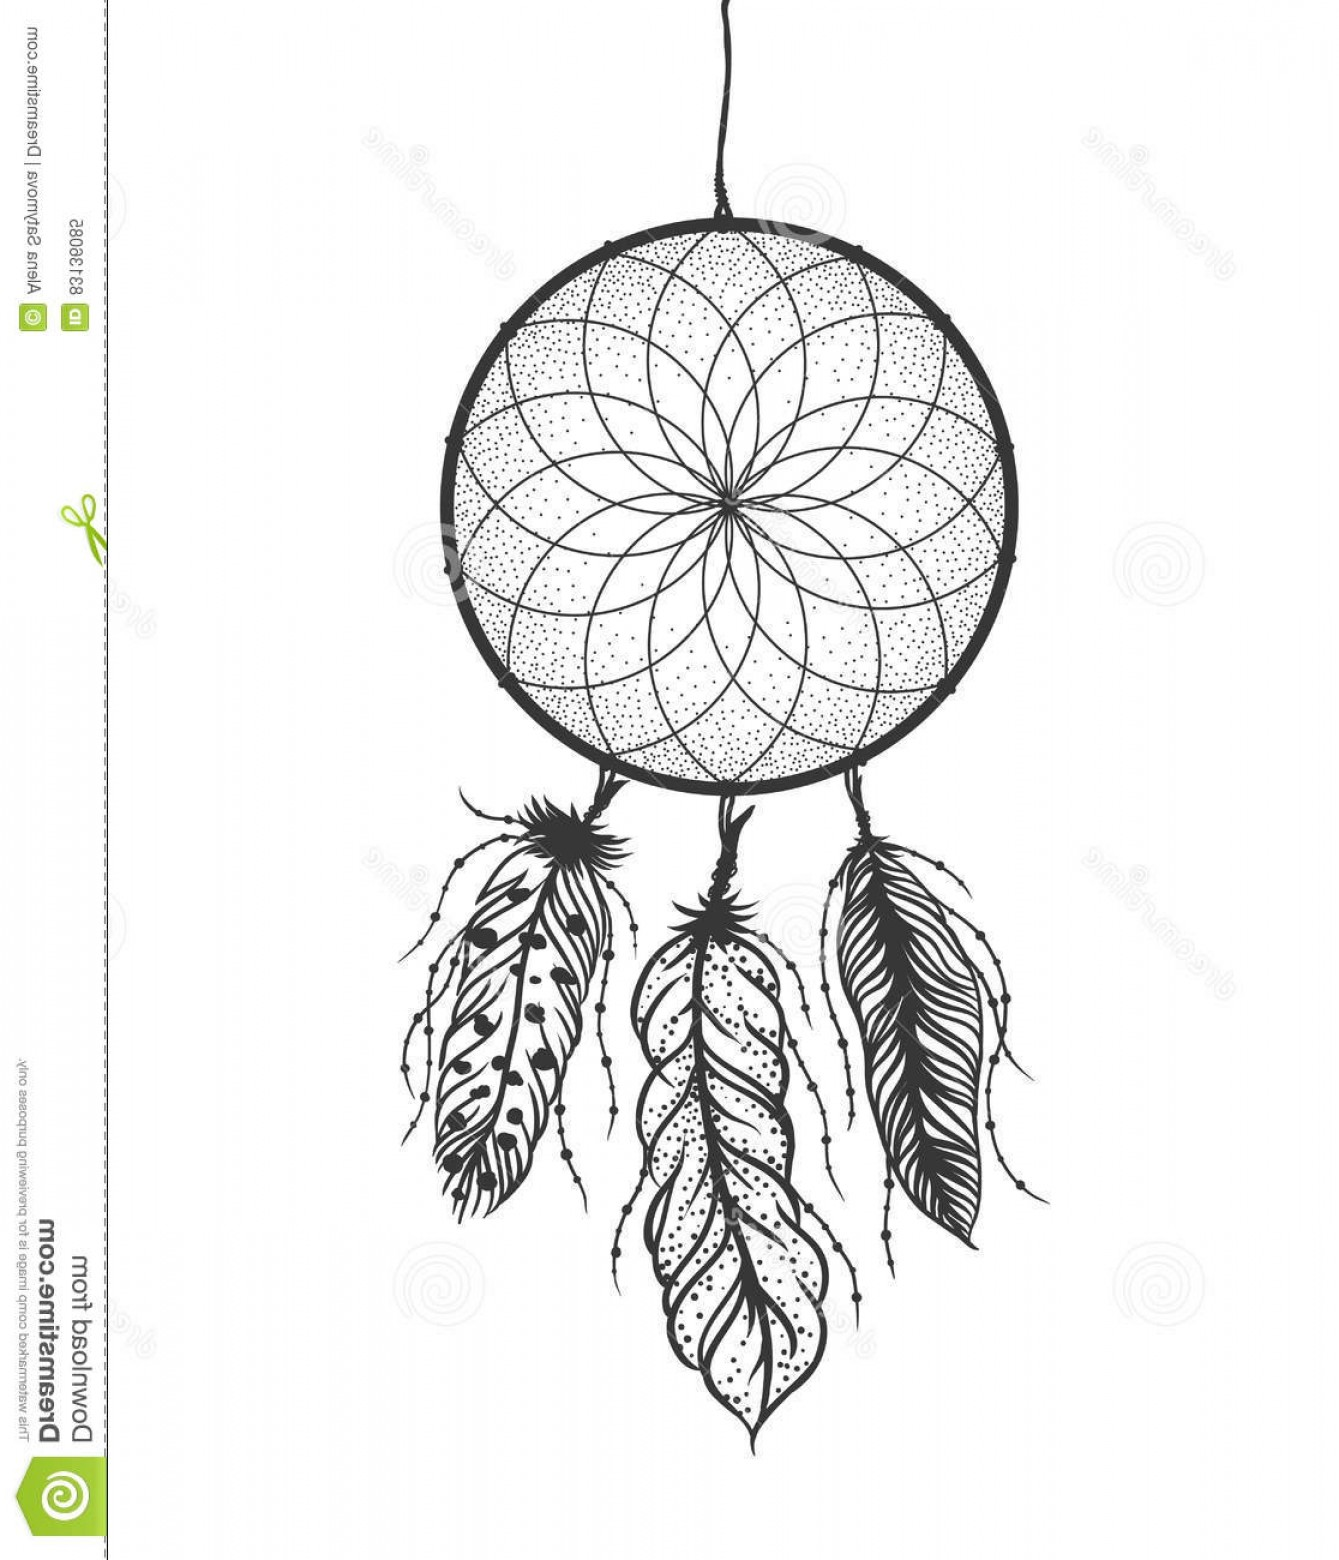 Dreamcatcher Tattoo Vector: Stock Illustration Dreamcatcher Detailed Feathers Boho Style Tattoo Vector Illustration Hand Drawn Image